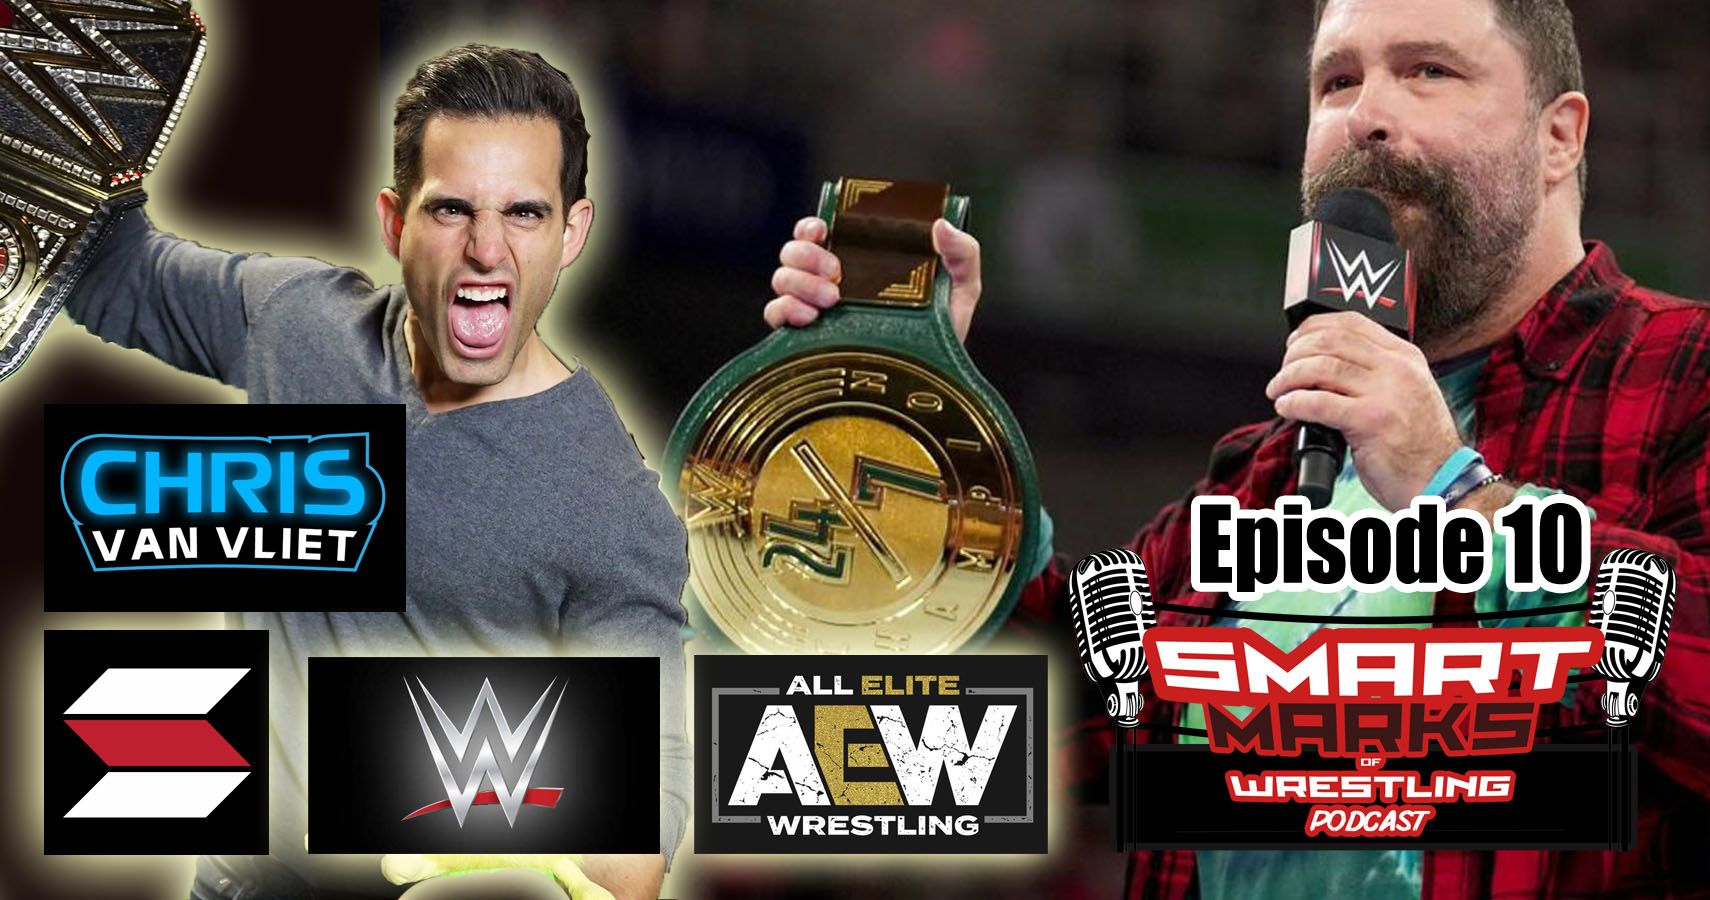 Smart Marks of Wrestling Podcast - Ep  10 - Chris van Vliet Interview